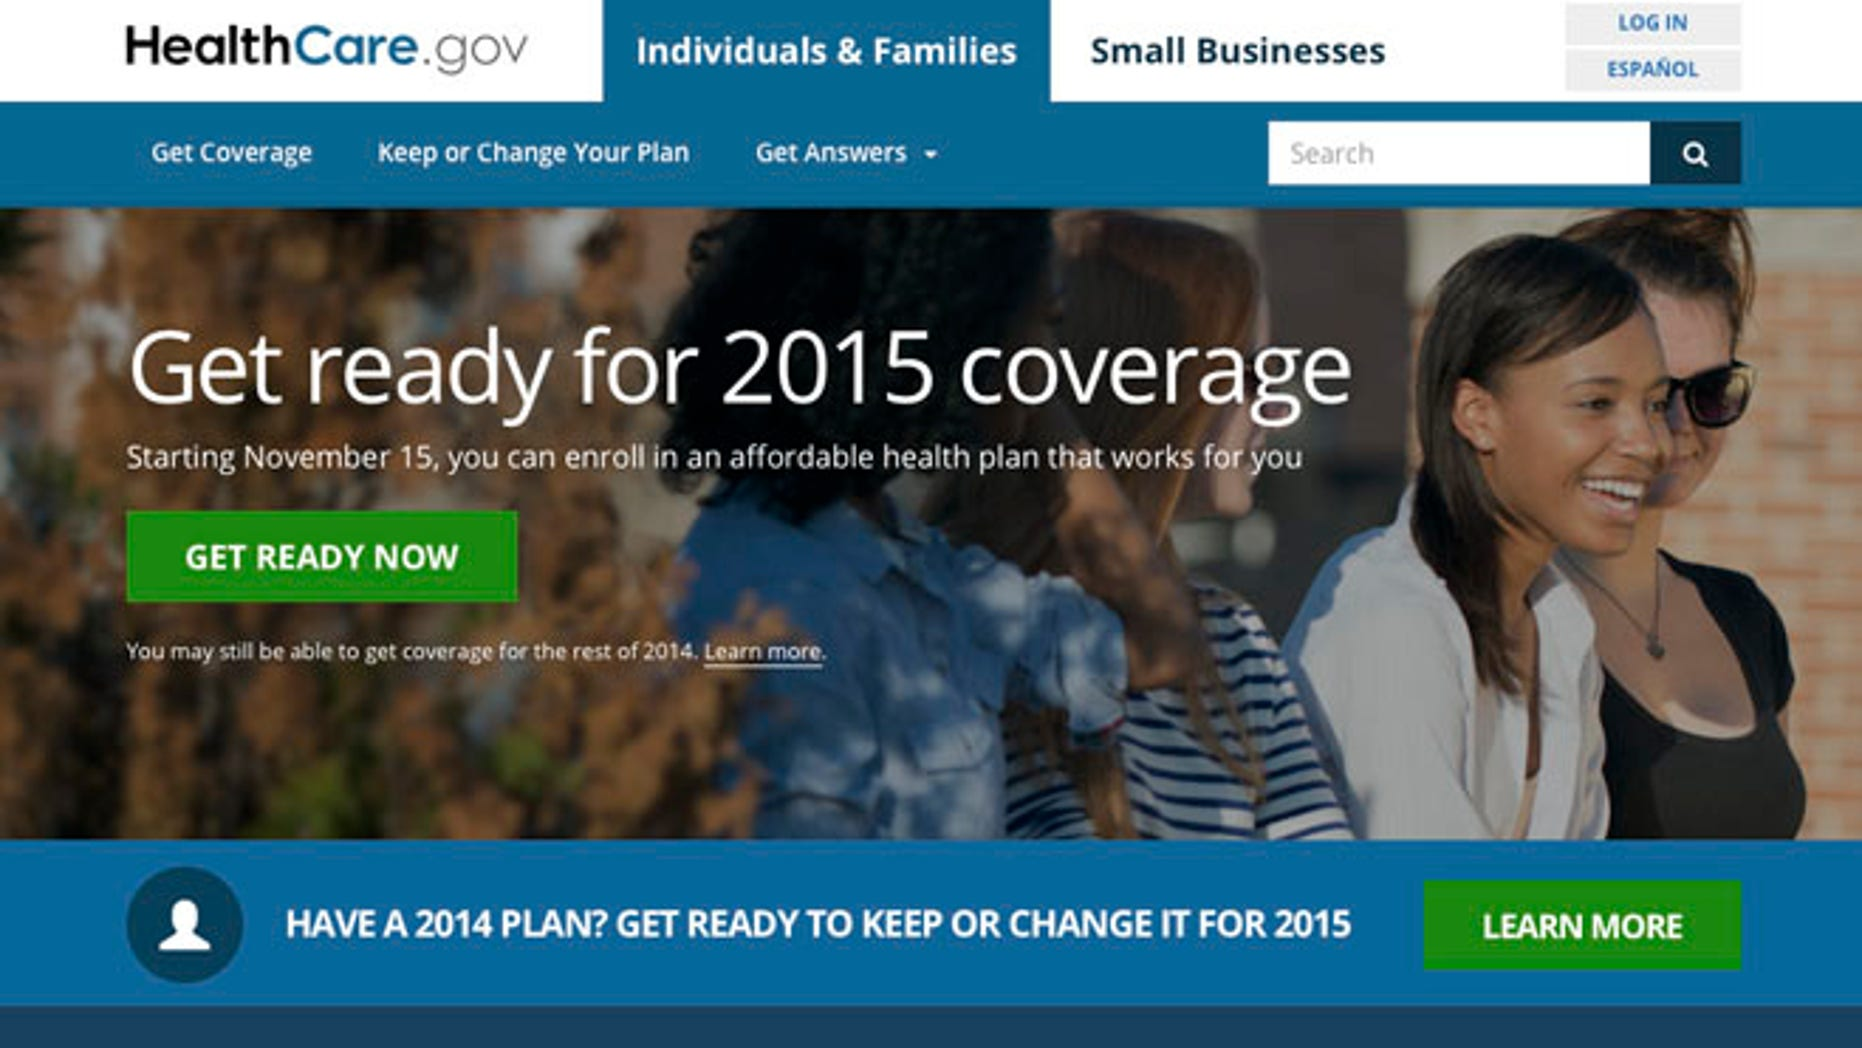 Oct. 8, 2014: This image shows the website for updated HealthCare,gov, a federal government website managed by the U.S. Centers for Medicare & Medicaid Service